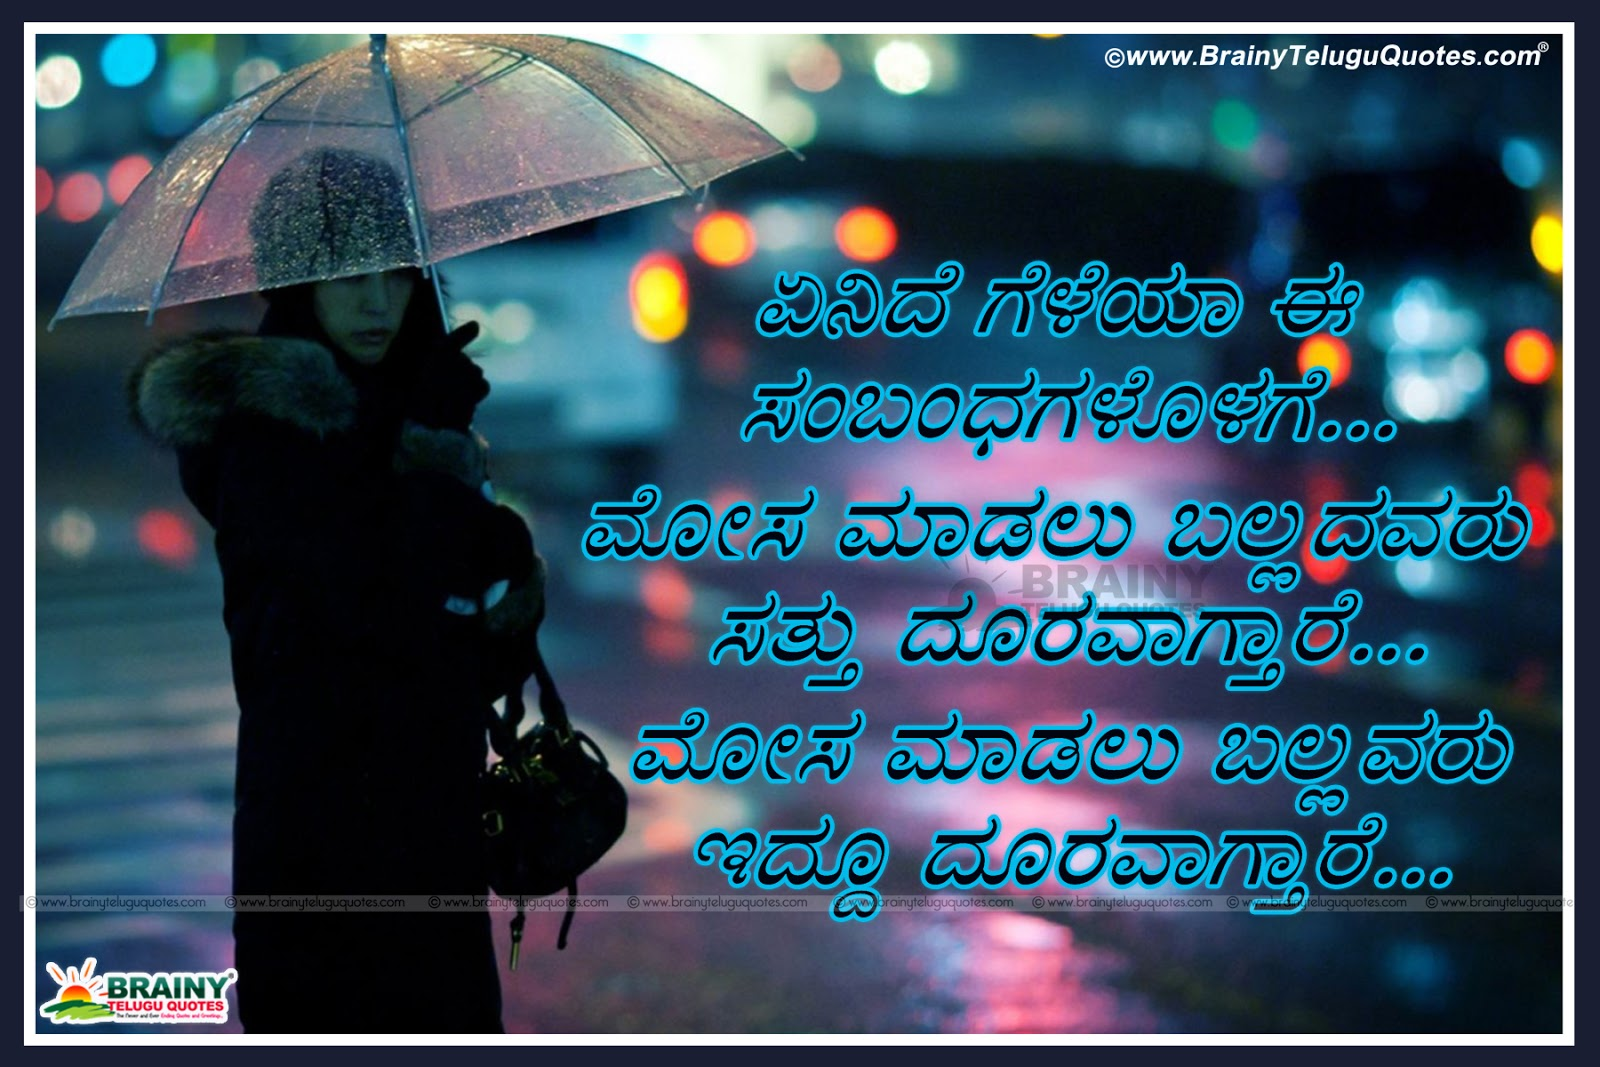 Image of: Whatsapp Kannada Love Quotes Source Sad Love Quotes Images Kannada Valentine Gift Ideas Romantic Quotes Motivational Sad Love Images With Quotes In Kannada Best Hd Wallpaper